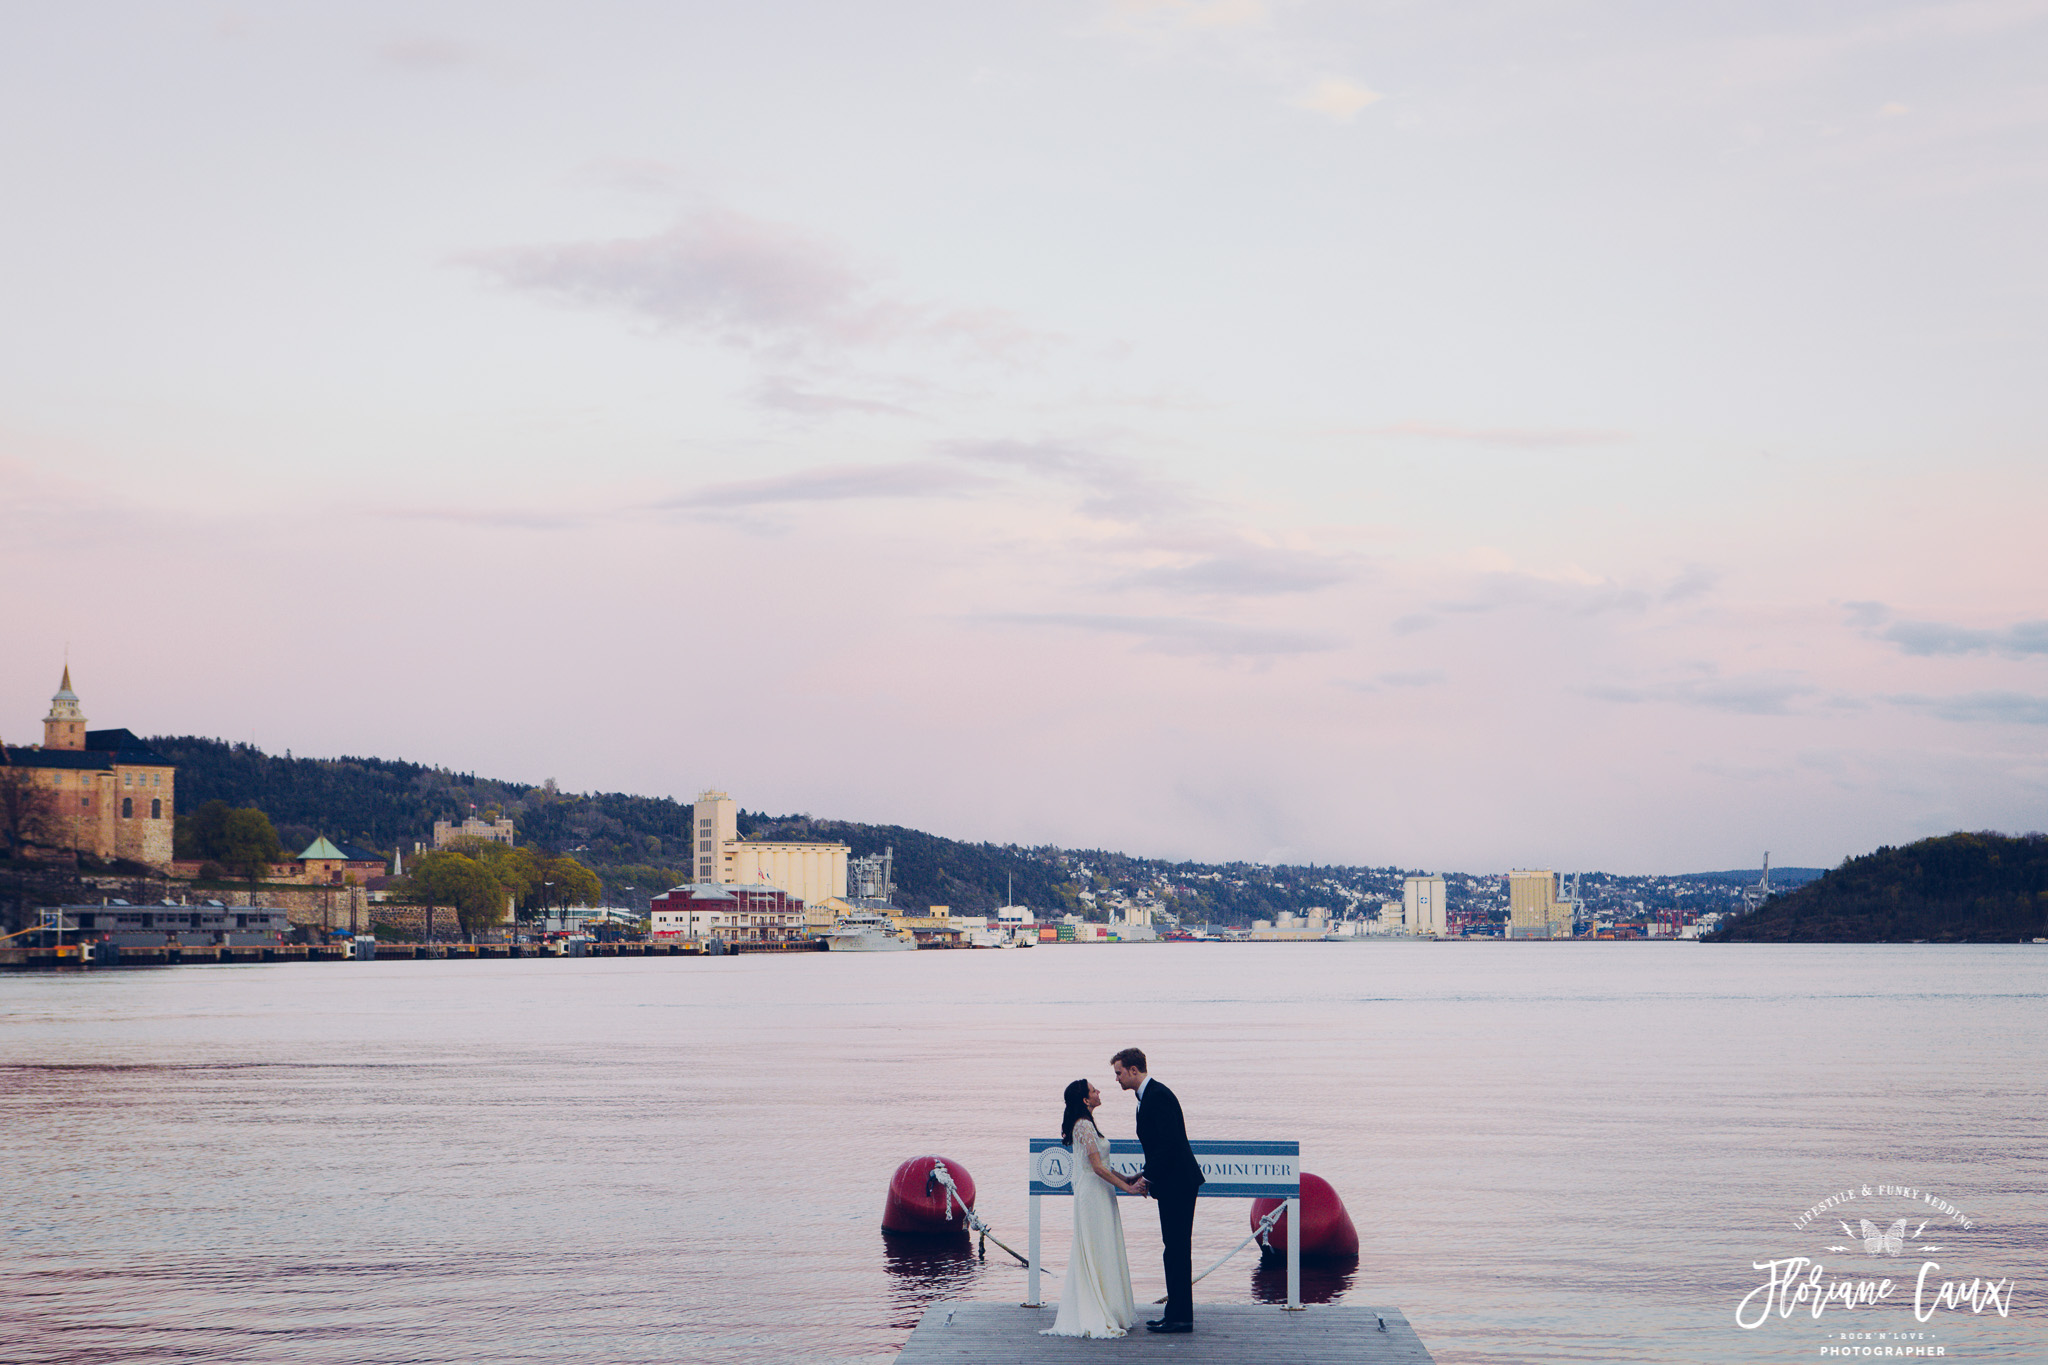 destination-wedding-photographer-oslo-norway-floriane-caux-50